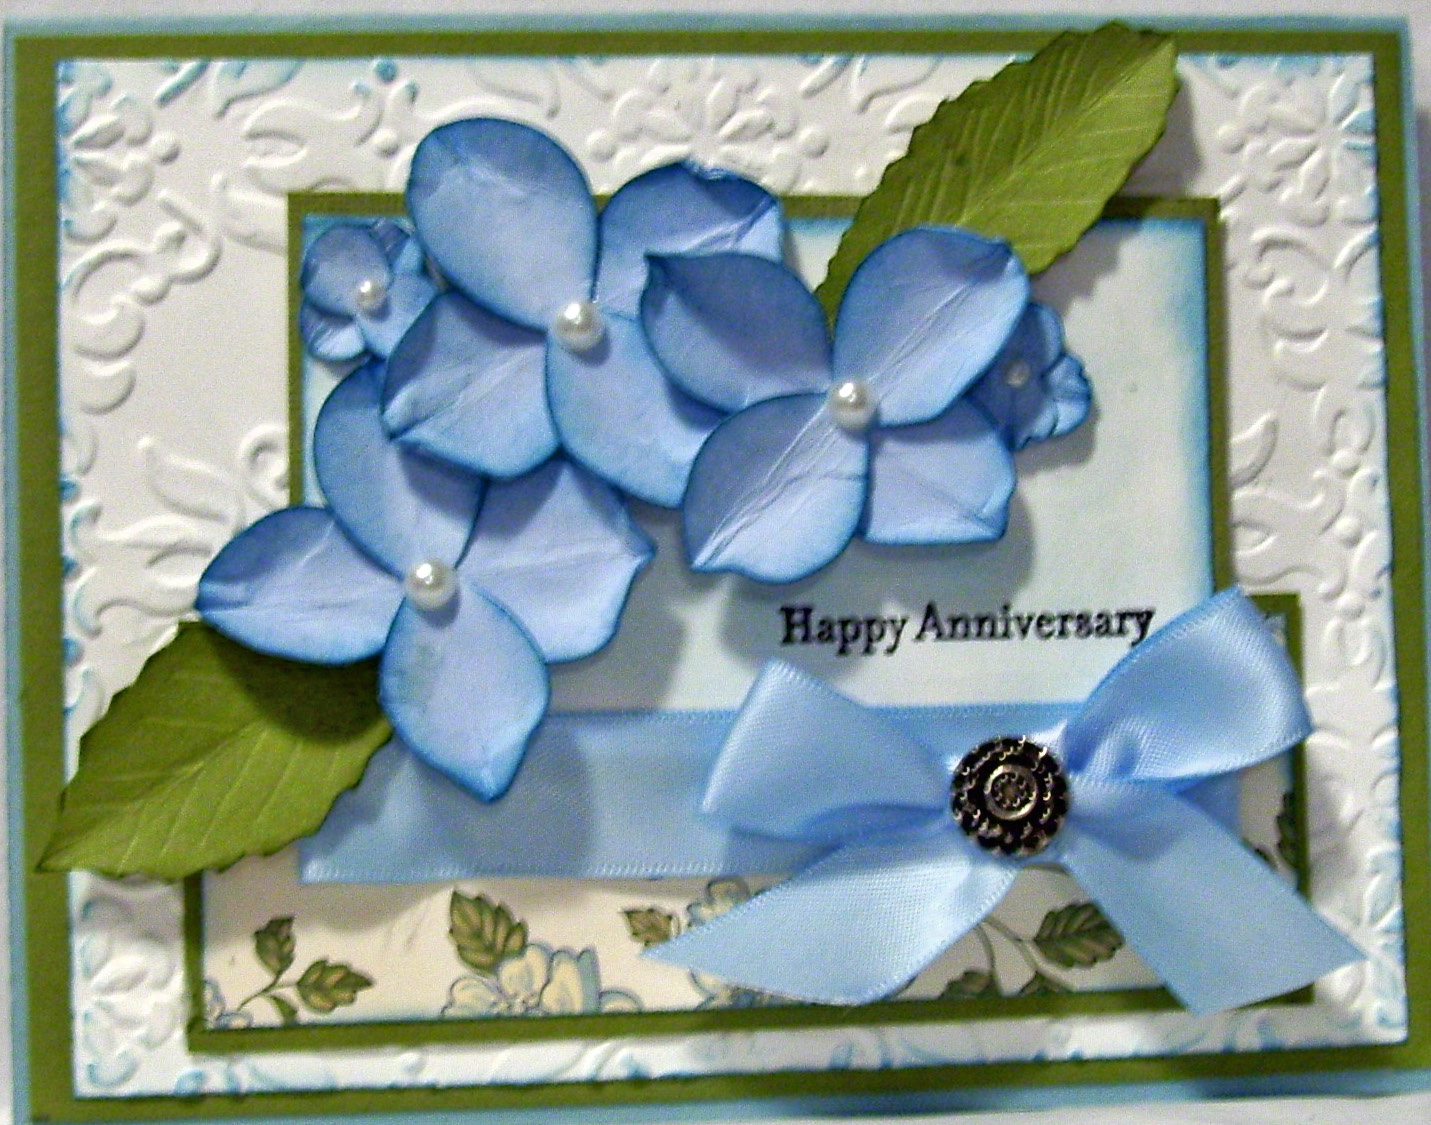 Crafty Maria's Stamping World: Hydrangea Anniversay Card